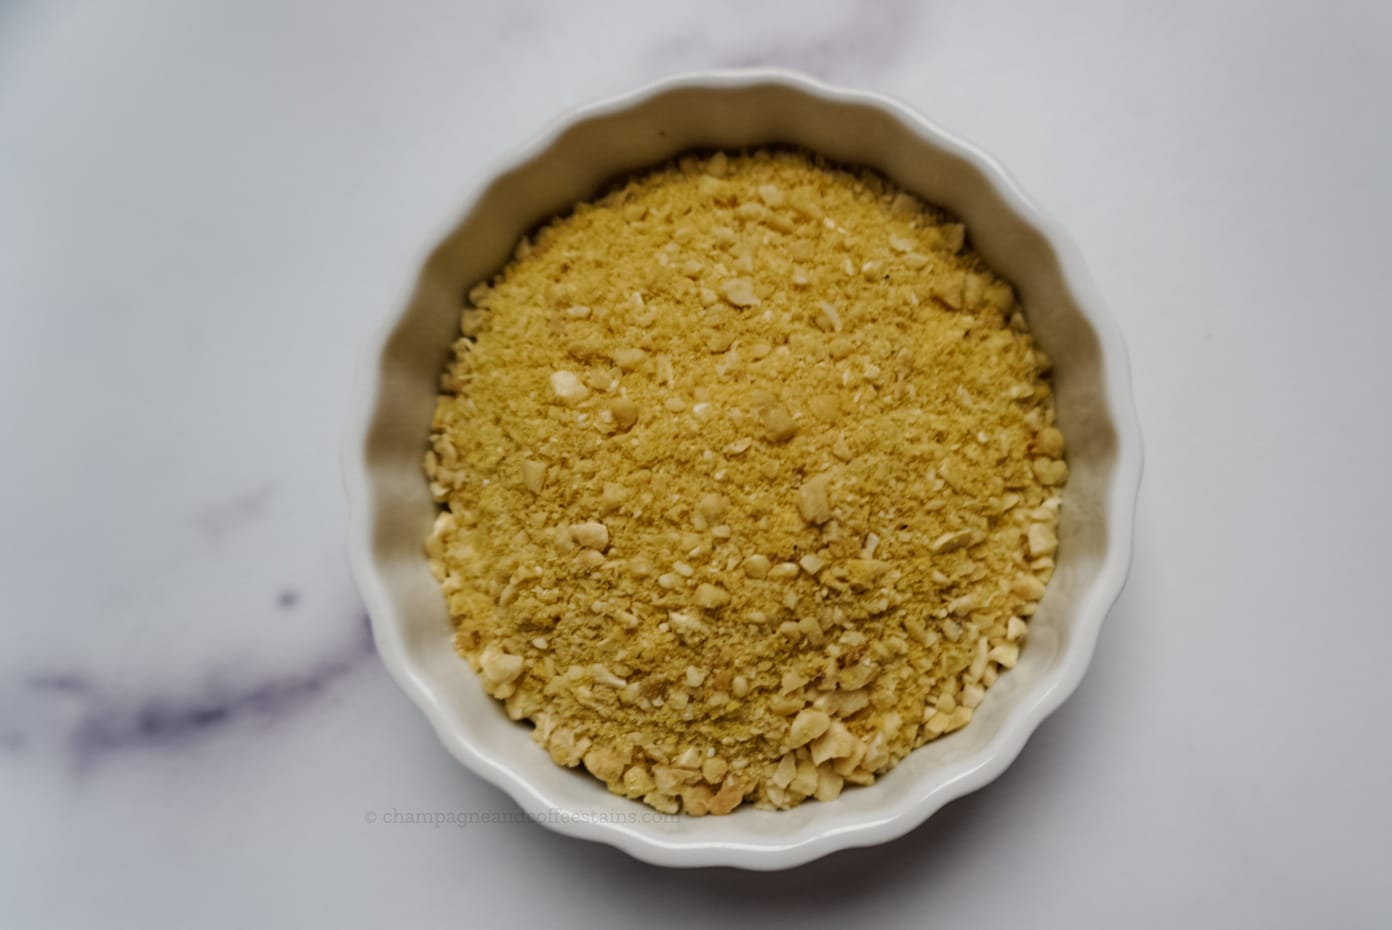 close up of parmesan cheese in a white bowl